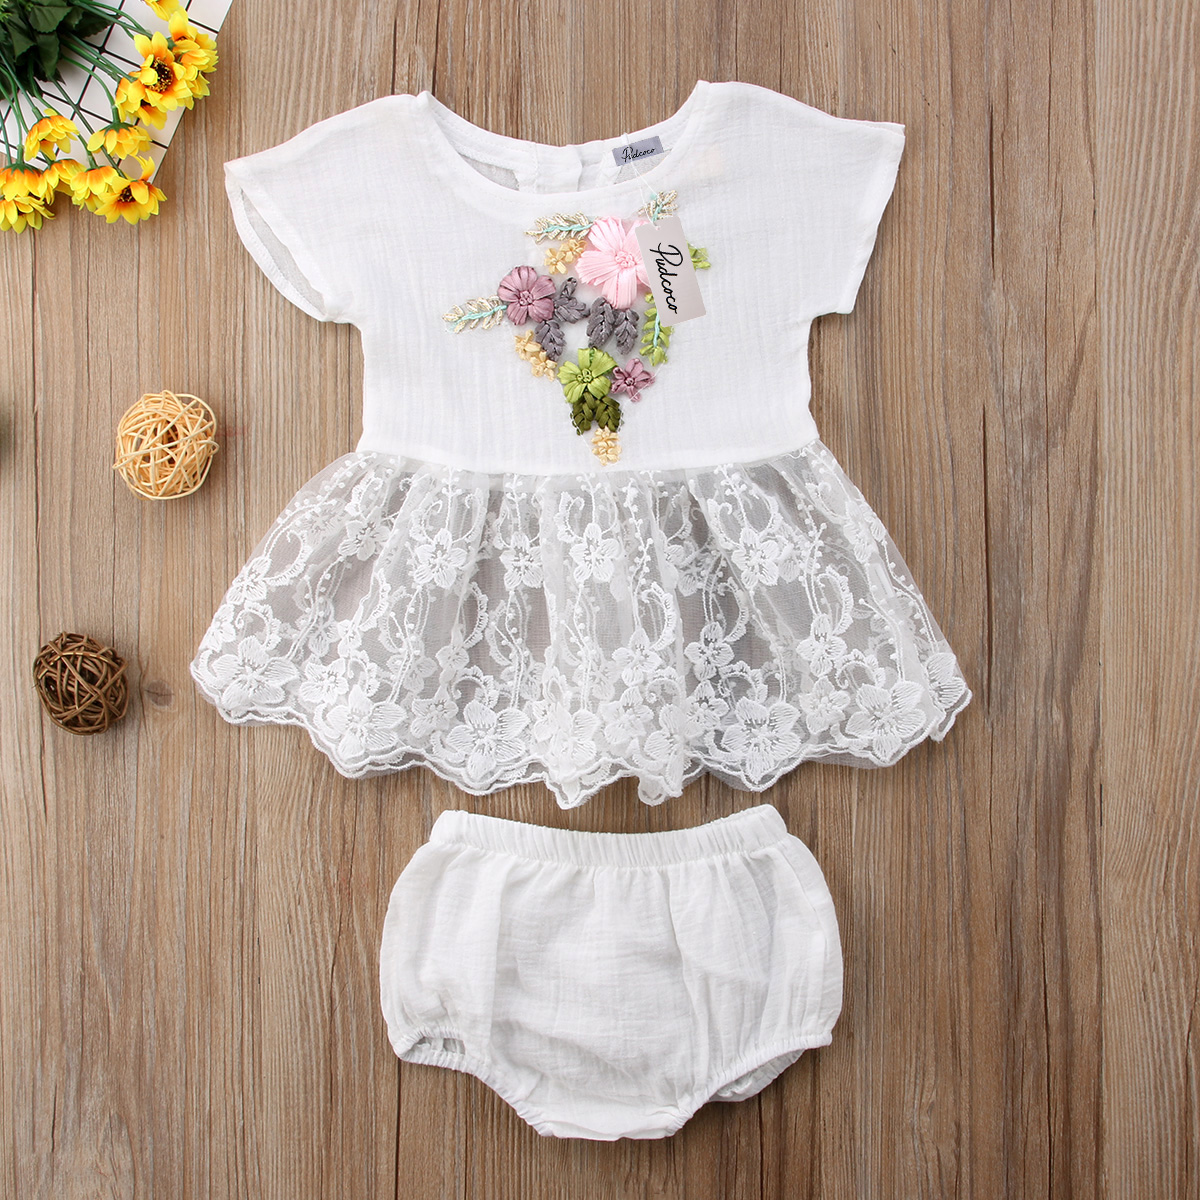 Pudcoco Newborn Kids Baby Girl Embroidery Lace Floral Outfits Top Dress+Shorts Pants 2PCS Summer Clothes Set 3pcs set newborn infant baby boy girl clothes 2017 summer short sleeve leopard floral romper bodysuit headband shoes outfits